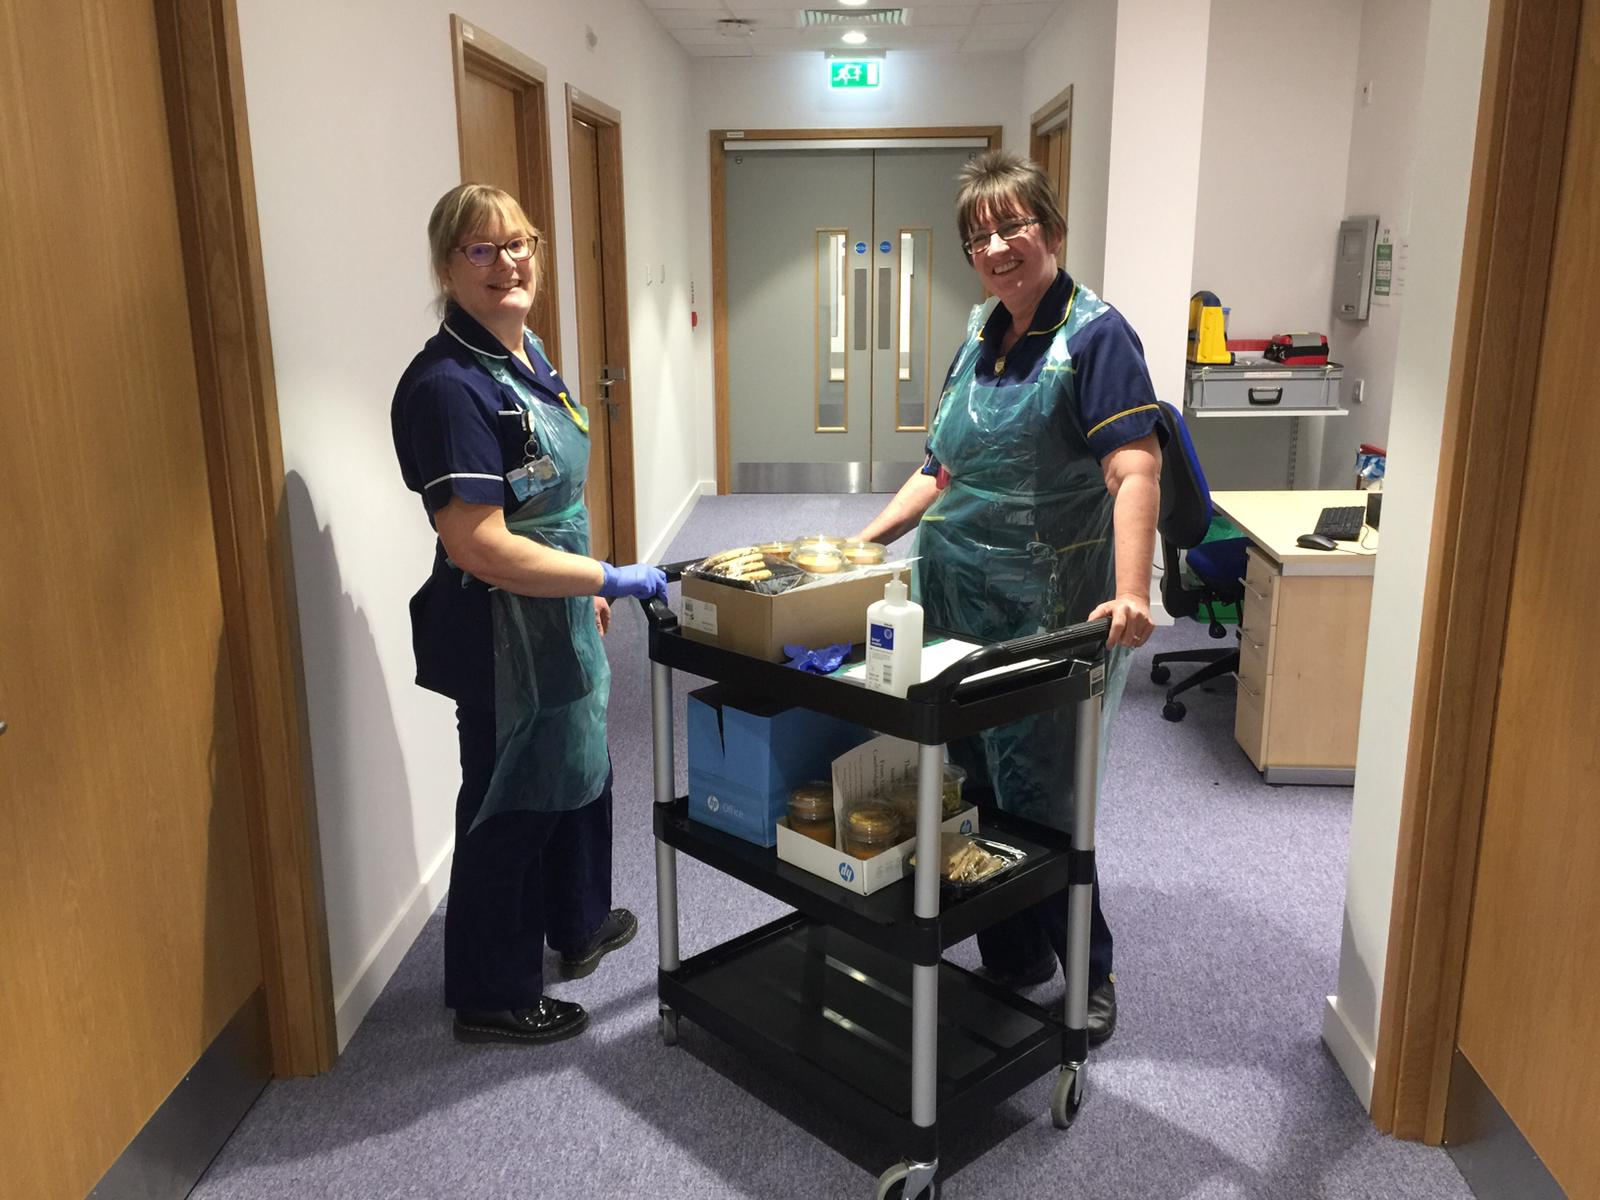 Research nurses from the TRF help to deliver food during the pandemic